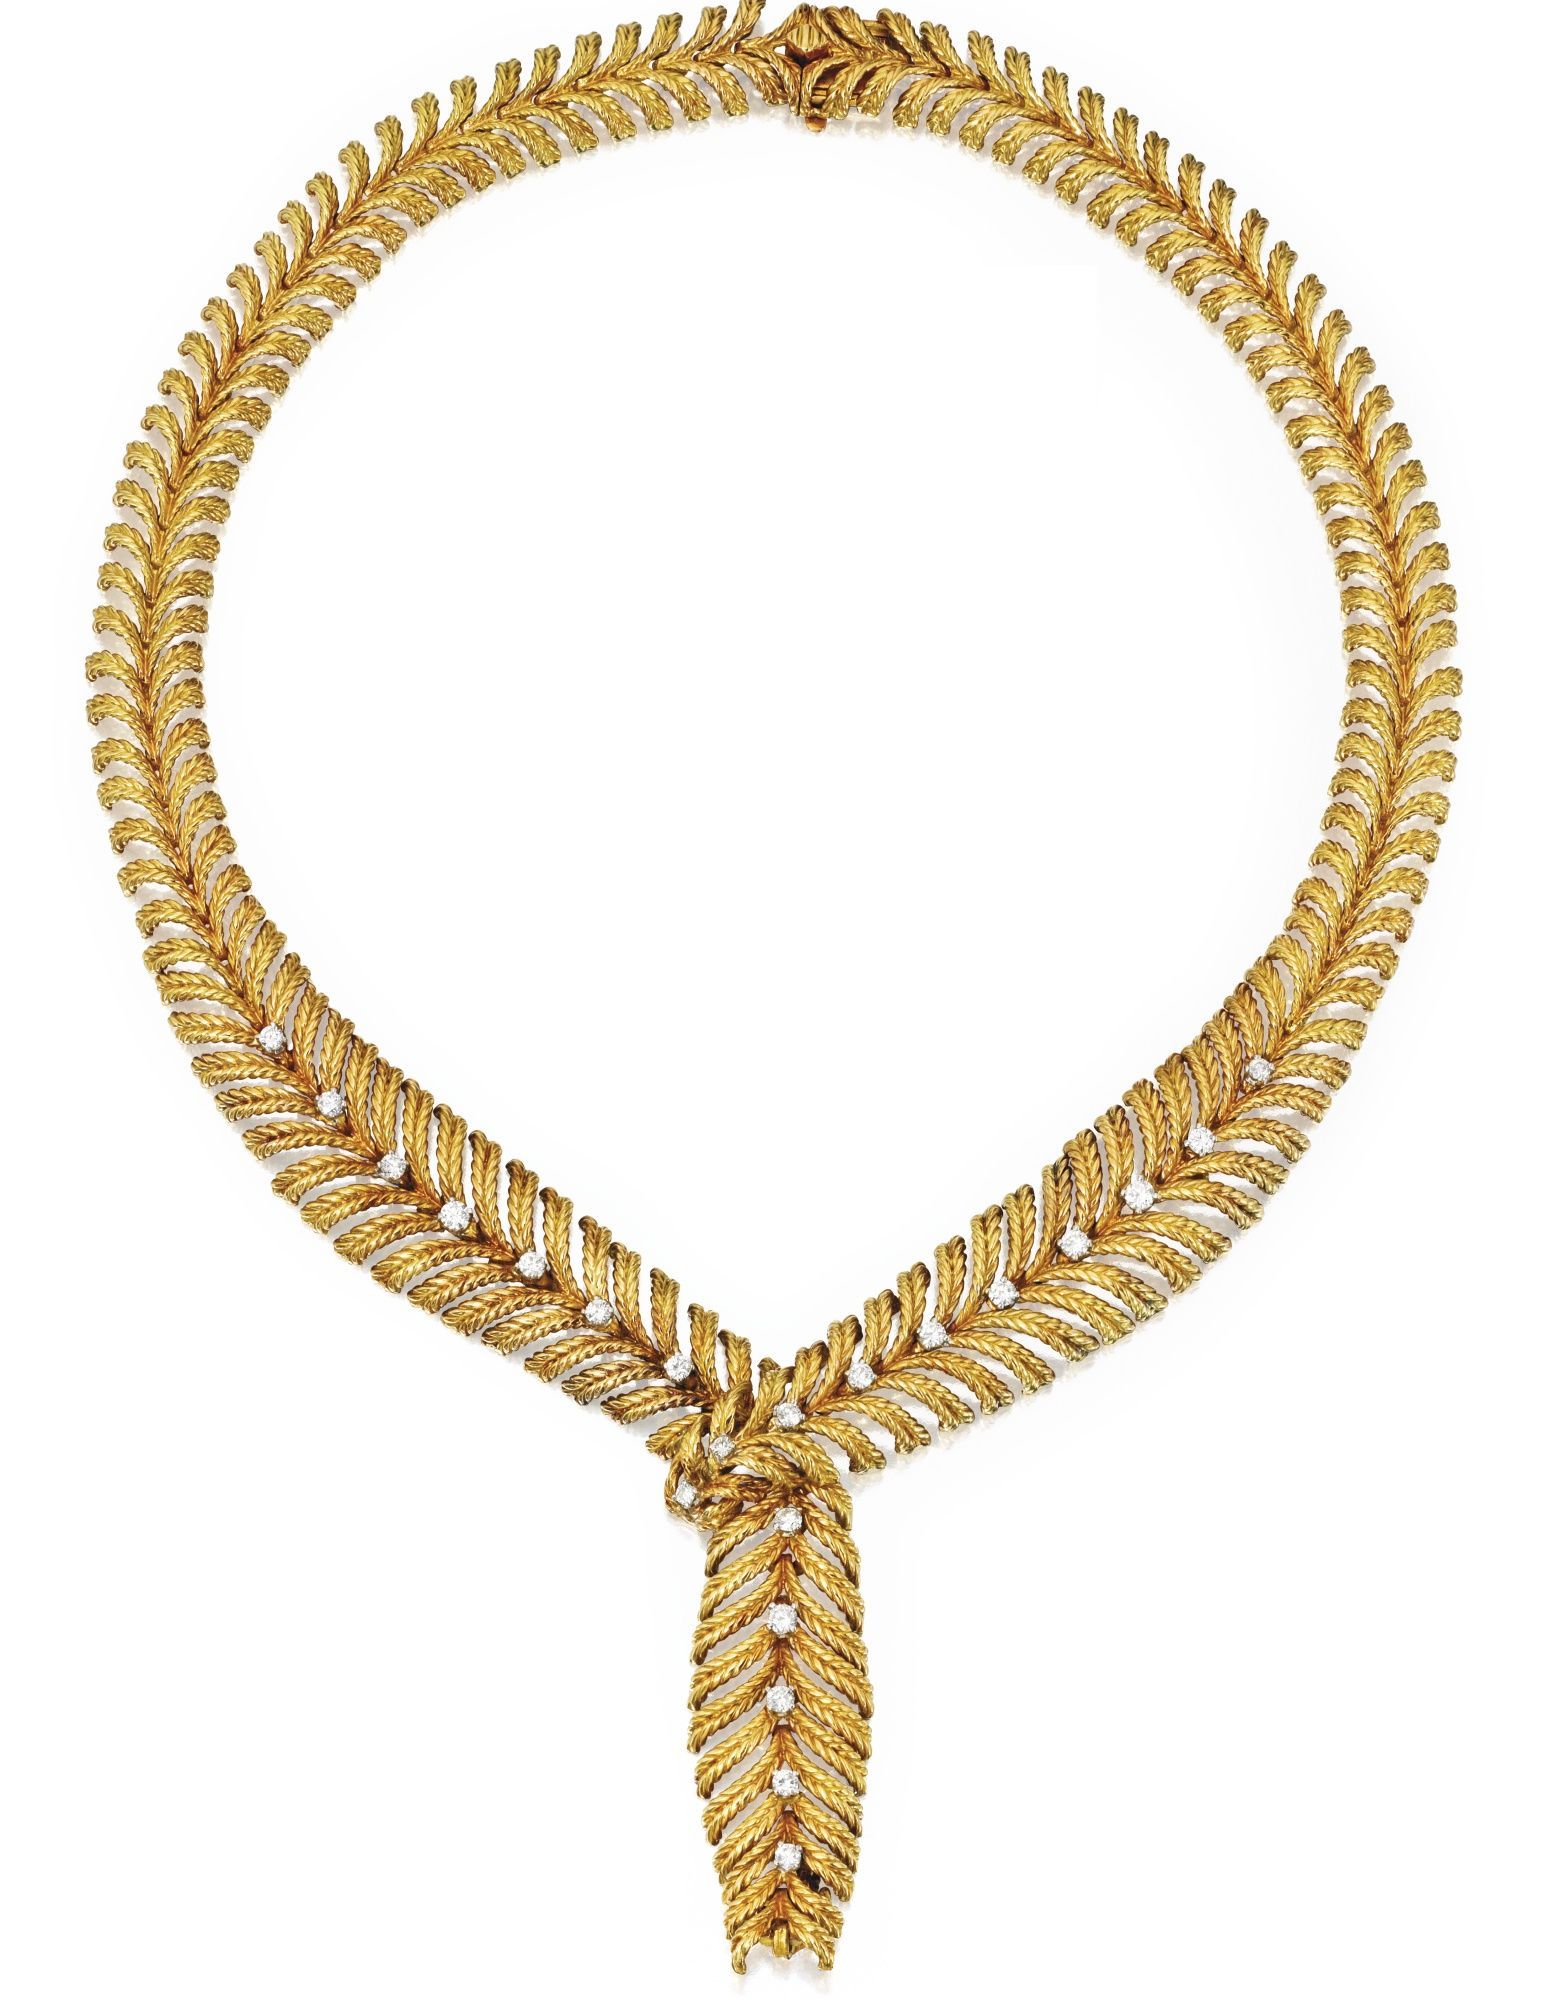 jewelry xo karat lyst metallic gold chains jennifer necklace meyer